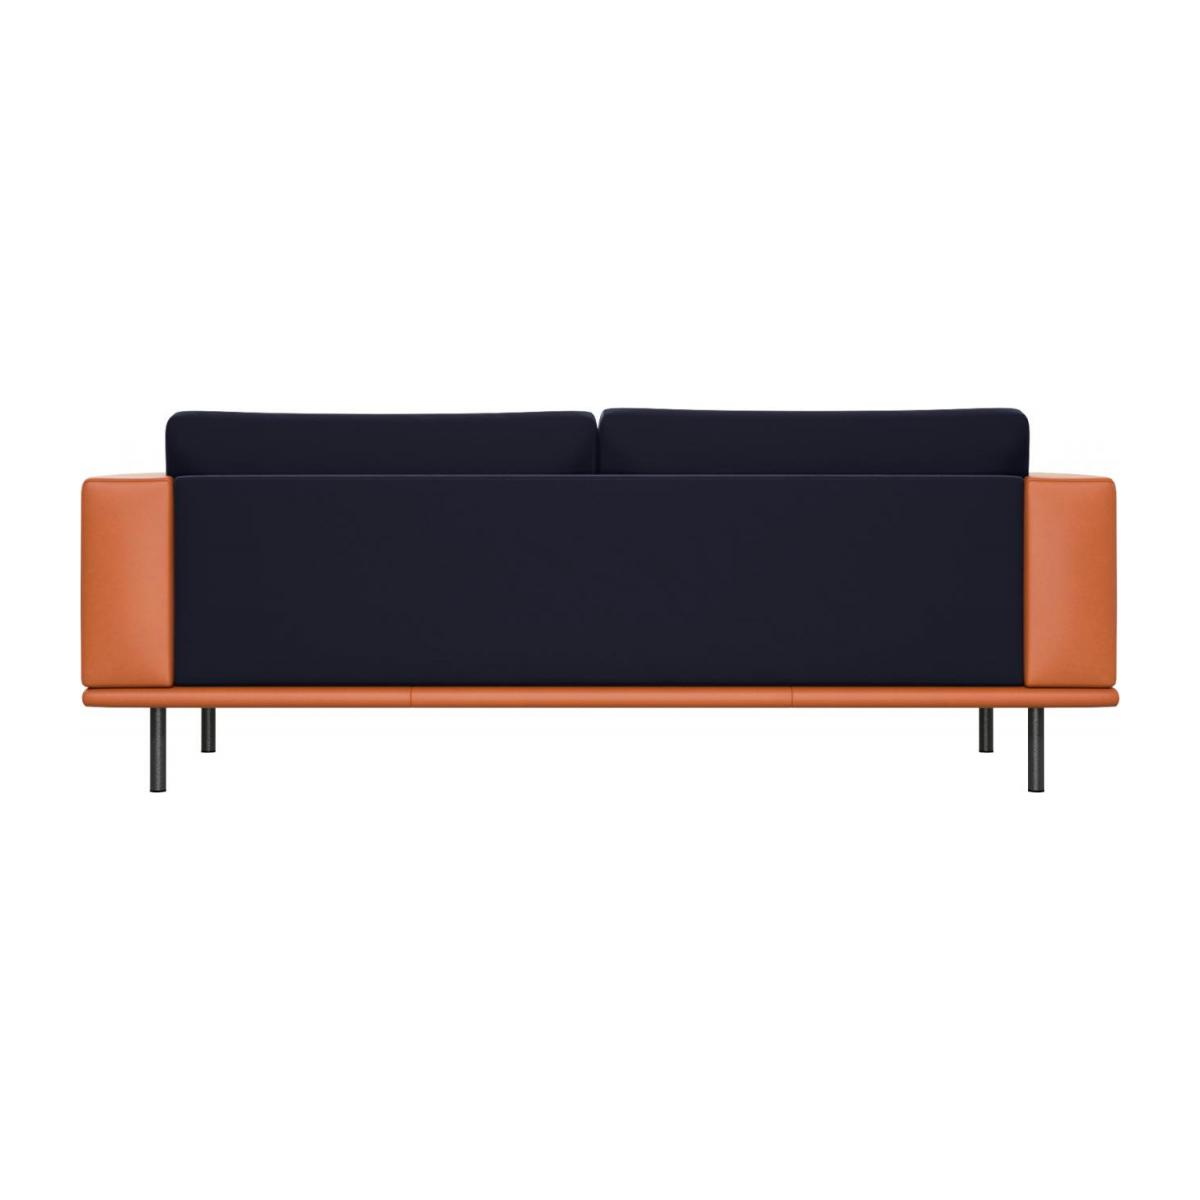 3 seater sofa in Super Velvet fabric, dark blue with base and armrests in brown leather n°4